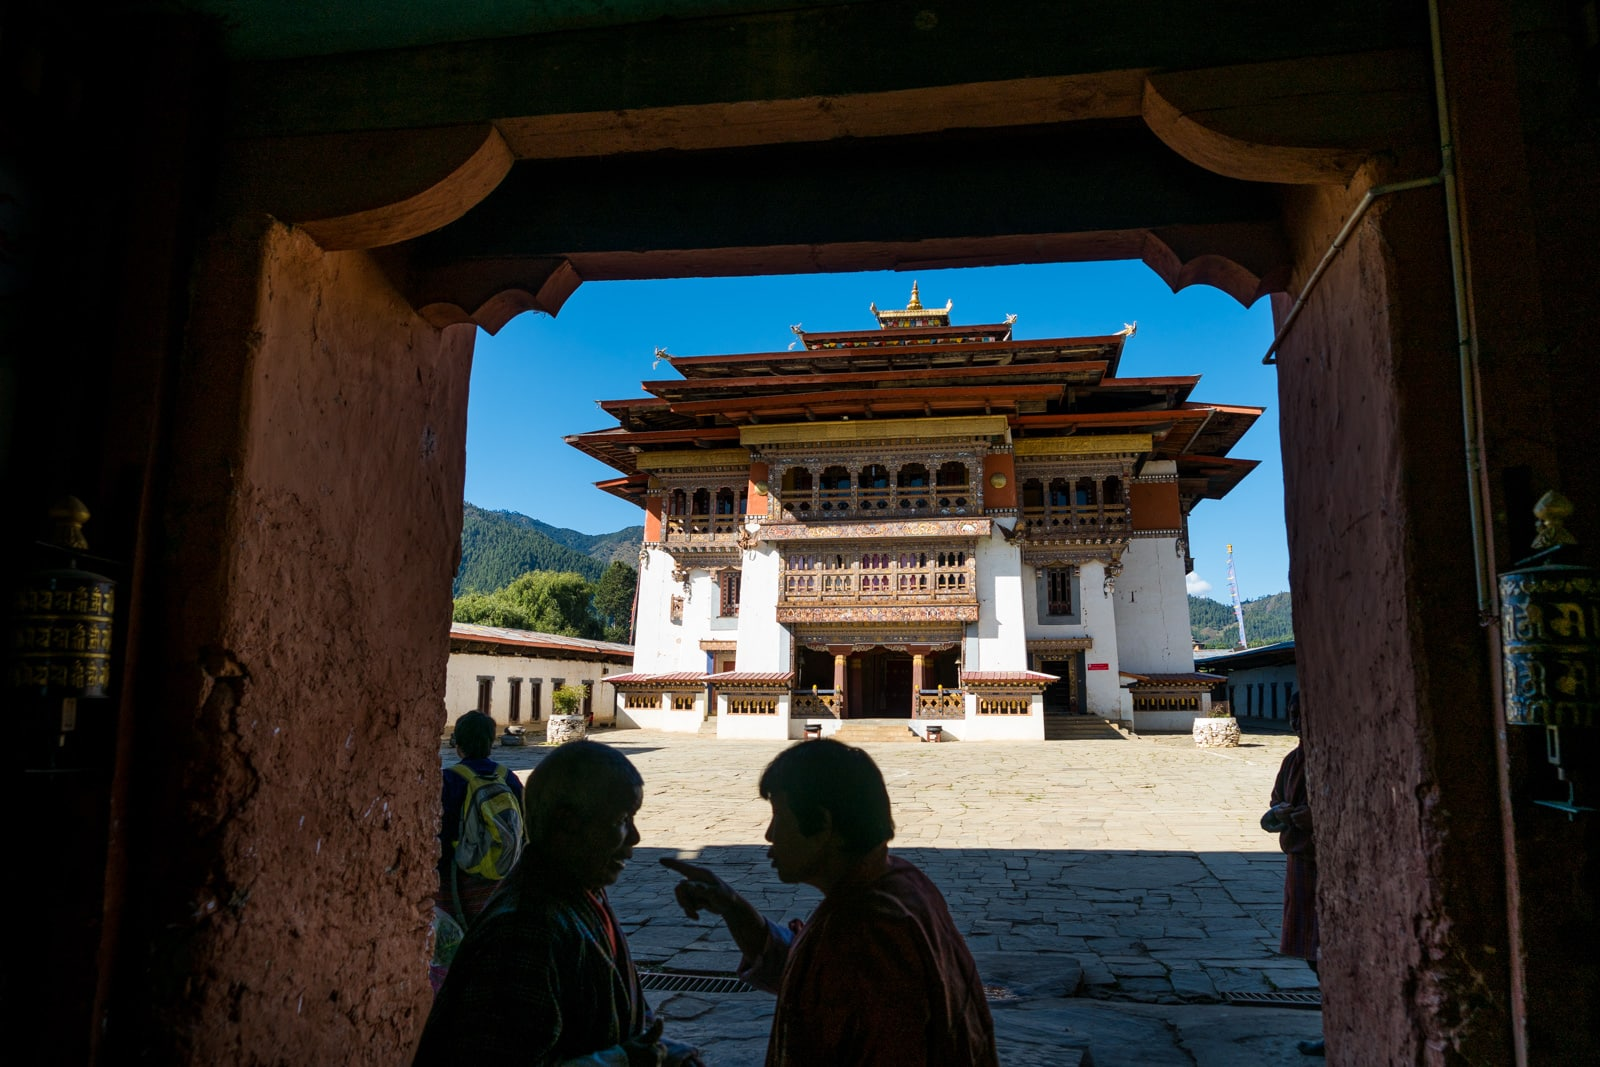 Stunning photos of Bhutan - Gangtey Monastery in Phobjikha Valley - Lost With Purpose travel blog